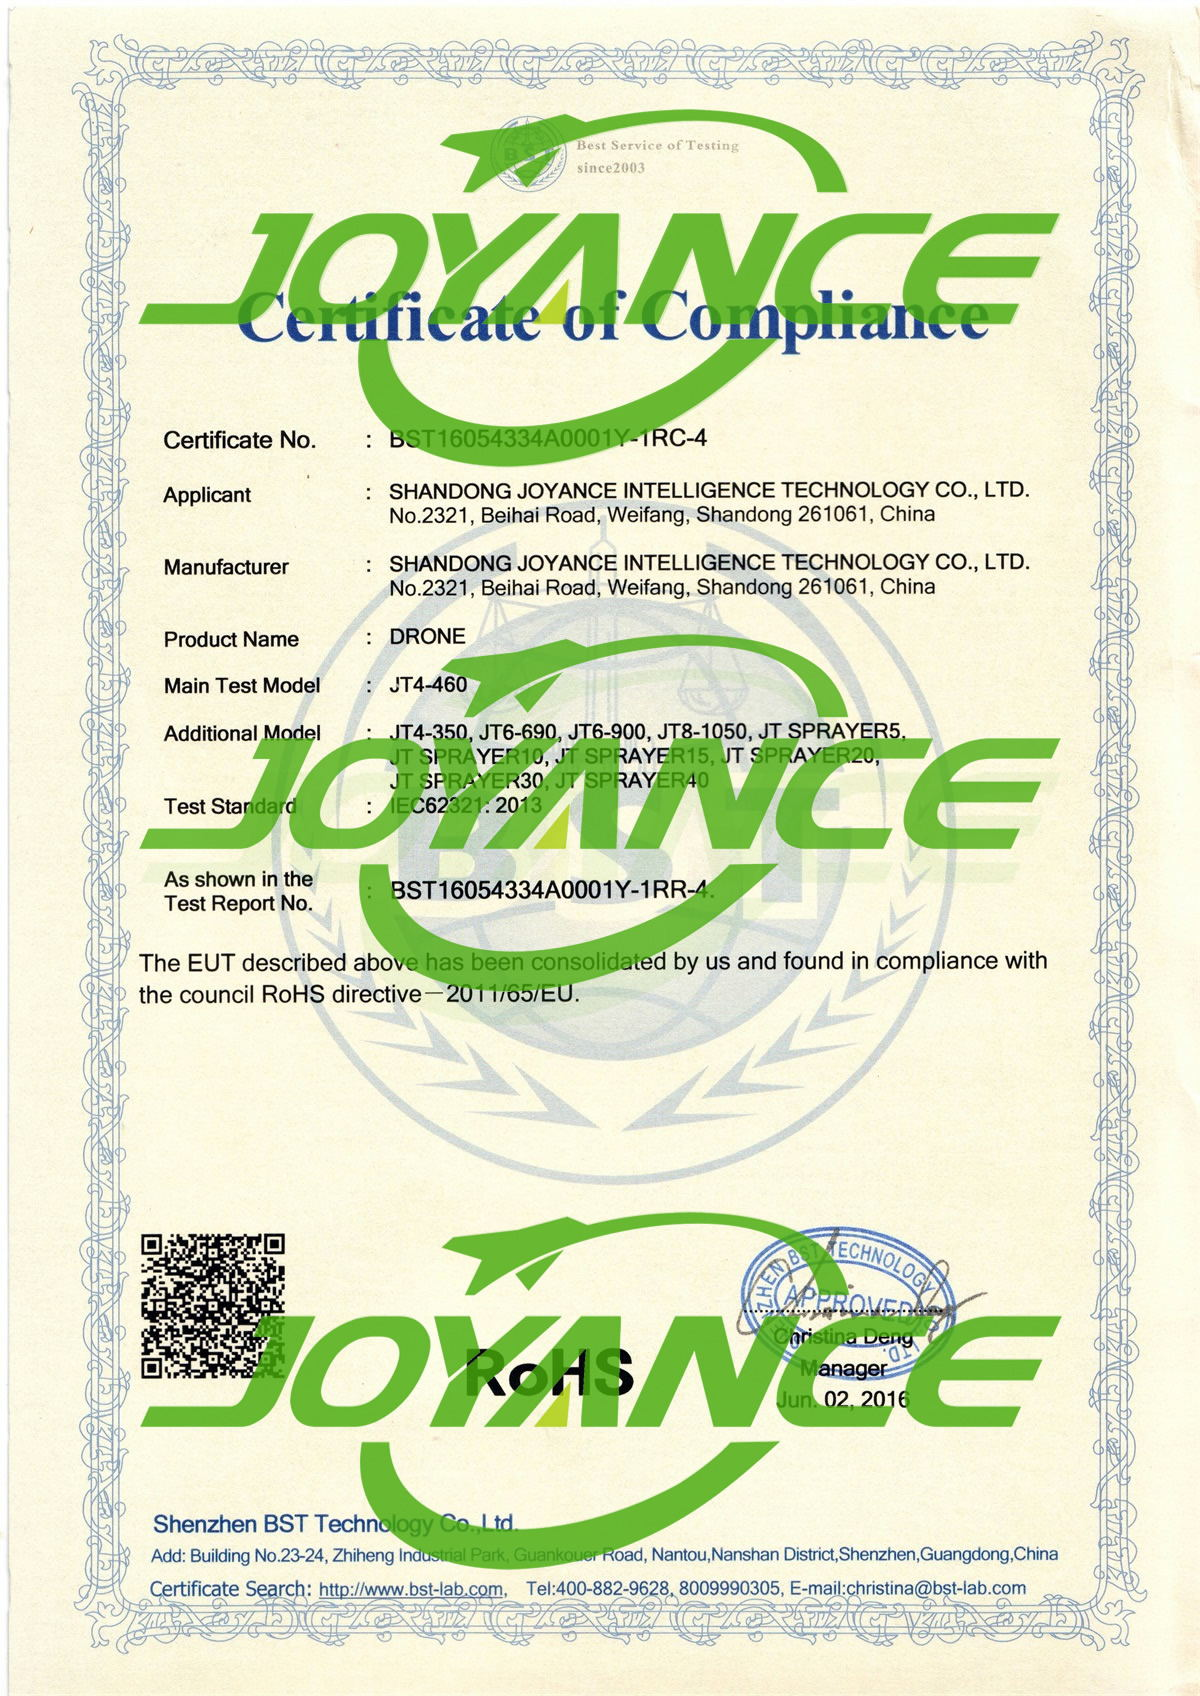 Joyance Drones Pass ROHS Test And Get ROHS Certificate